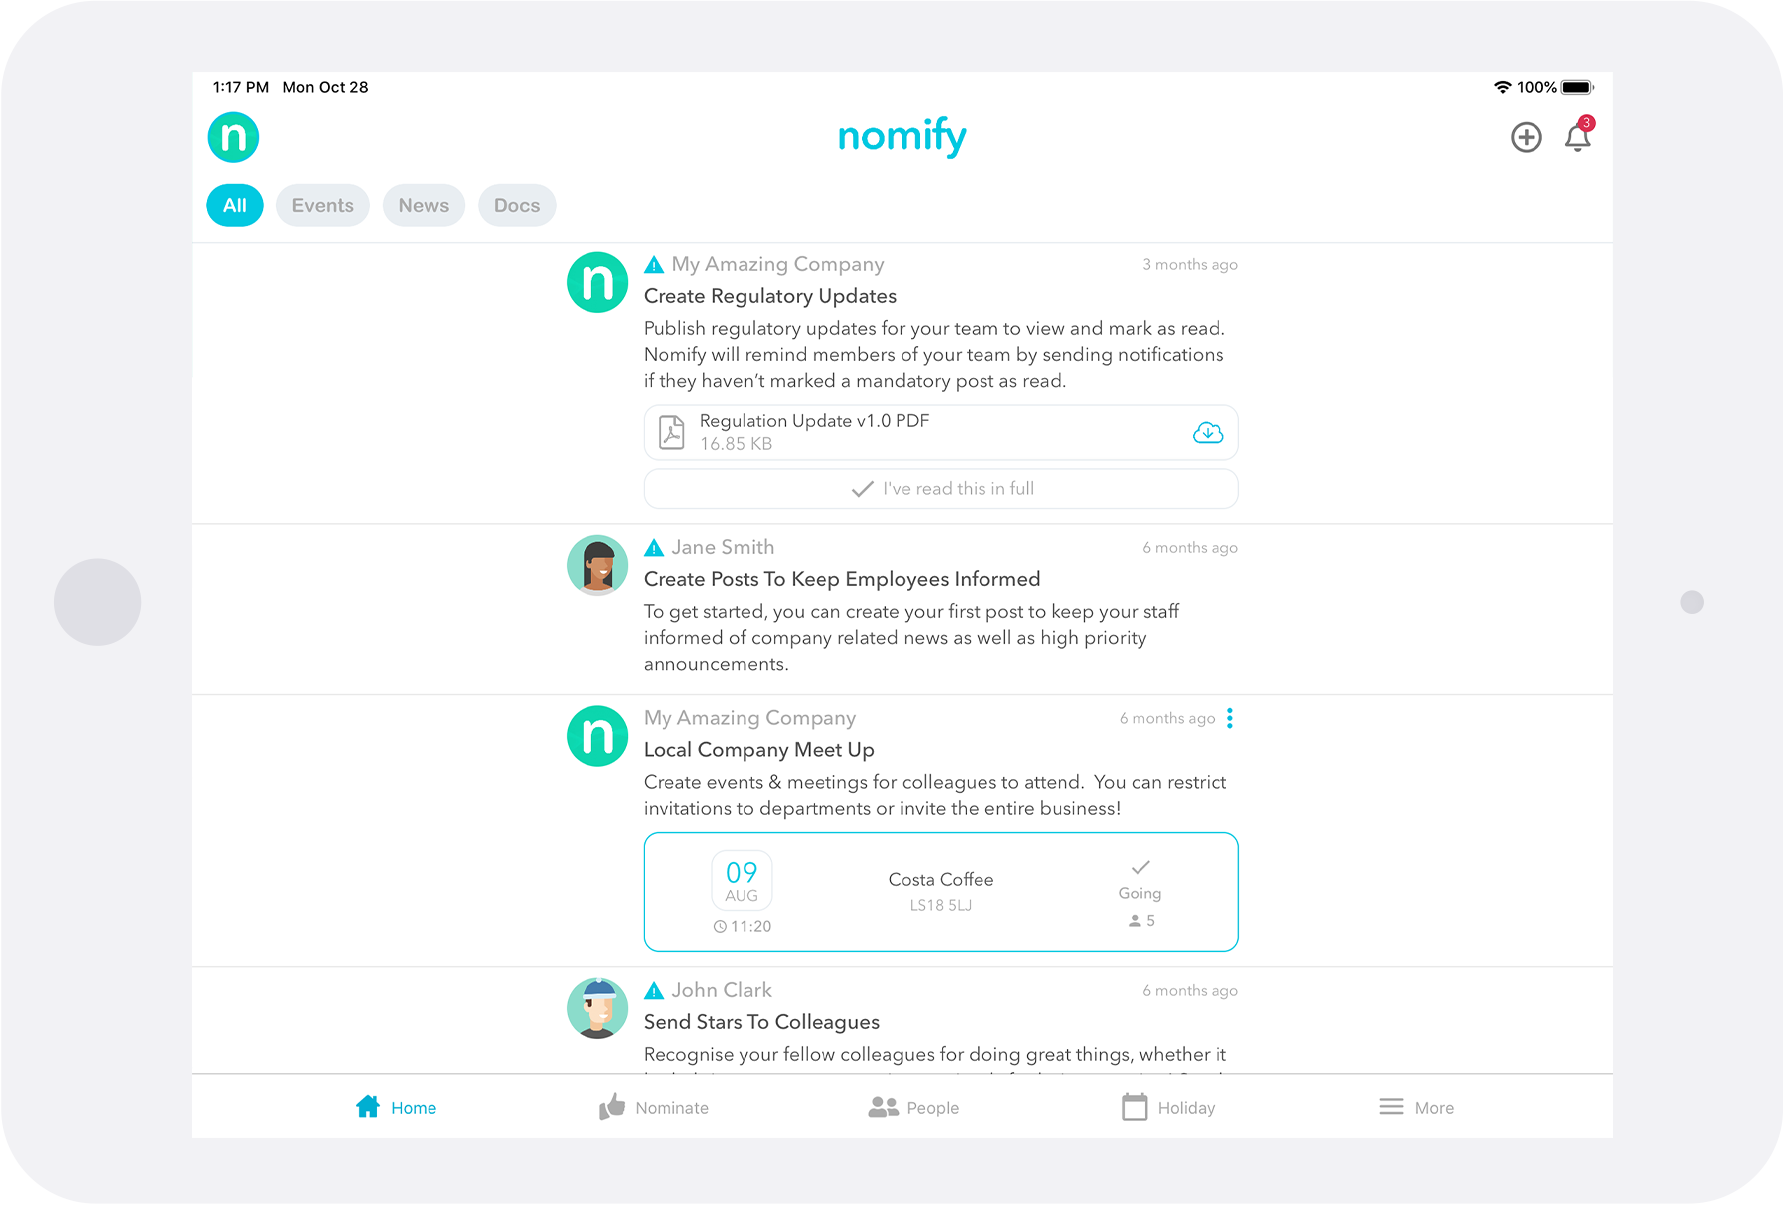 Nomify - The Employee Engagement App available on Tablets